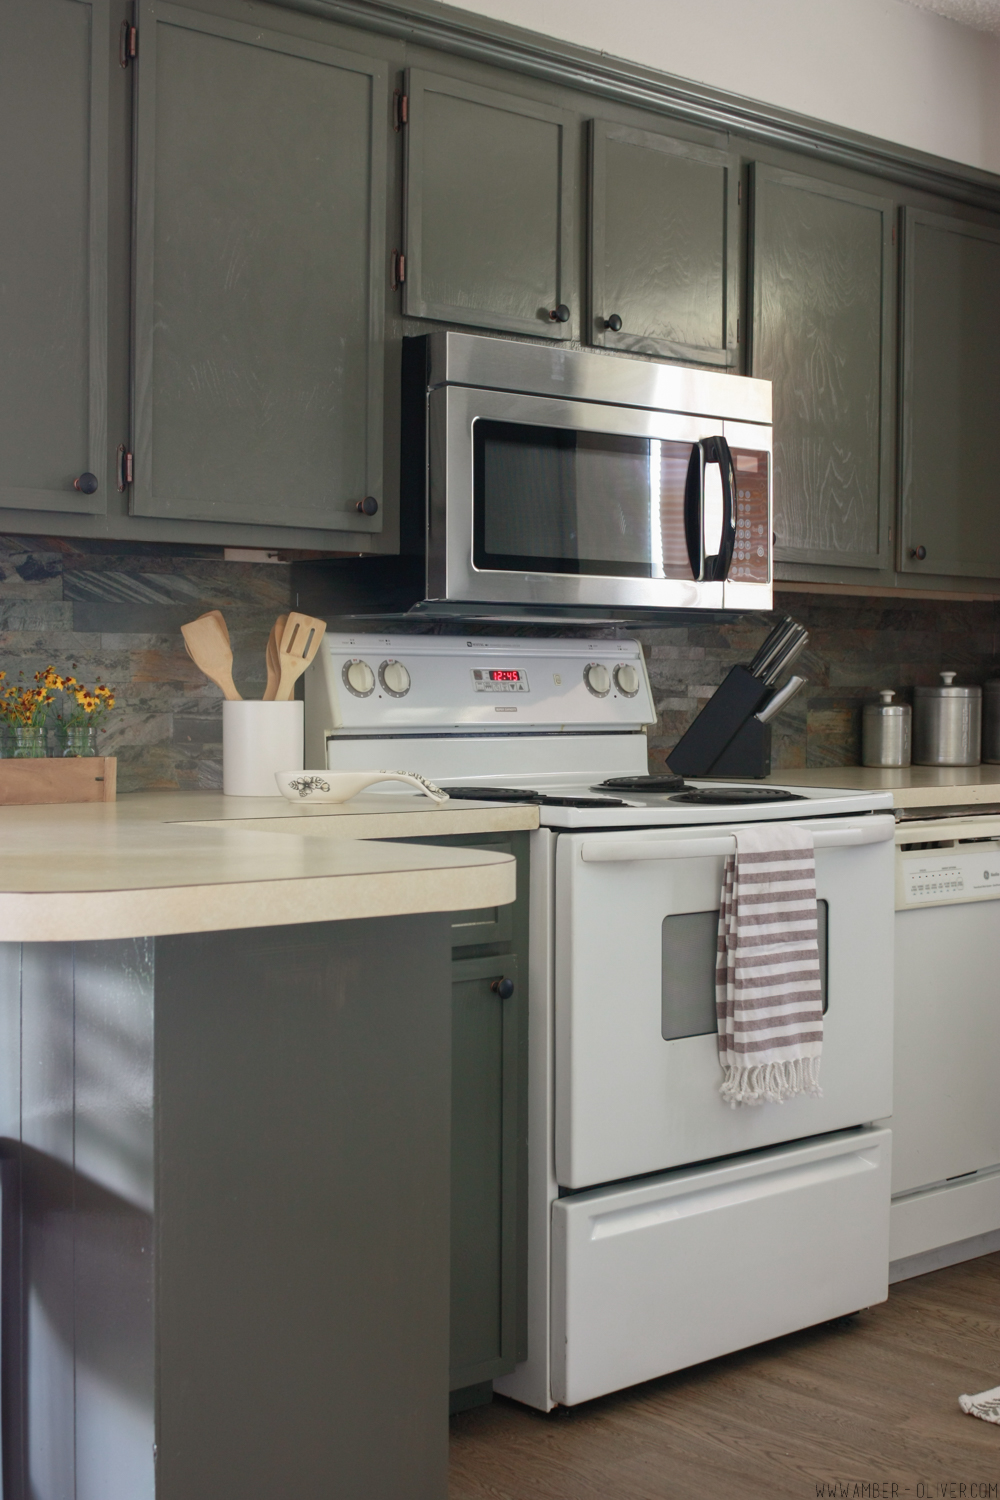 How To Update Old Kitchen Cabinets   Kitchen Remodel On A Budget!